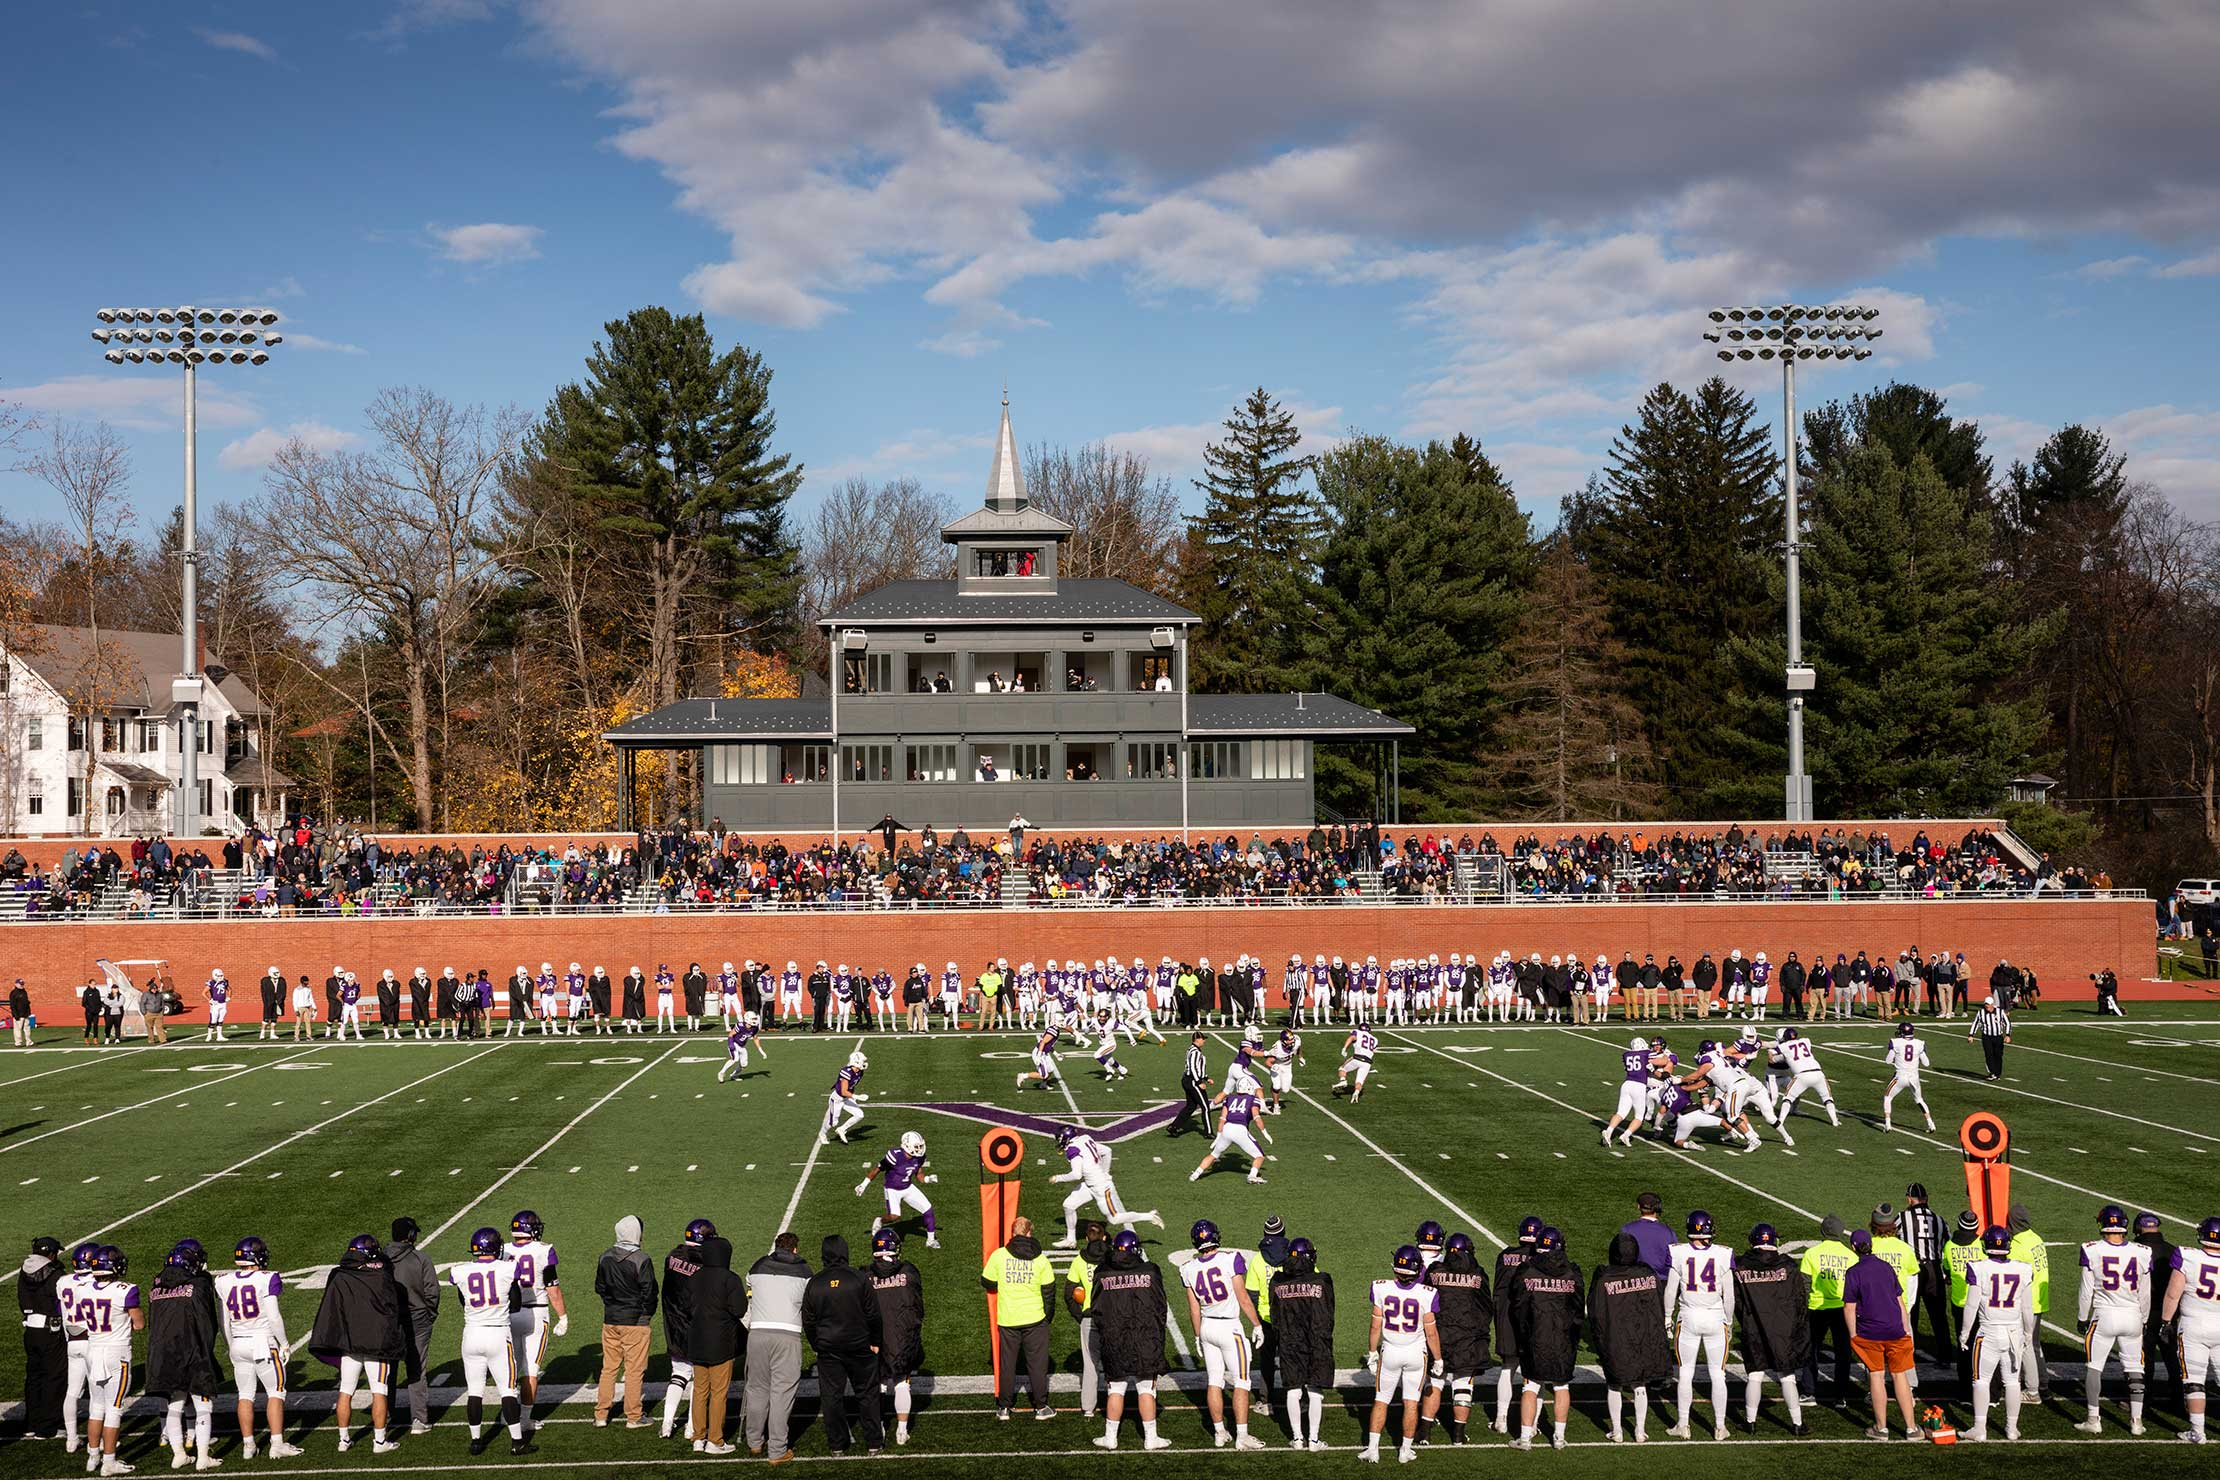 Amherst College and Williams College on the football field.